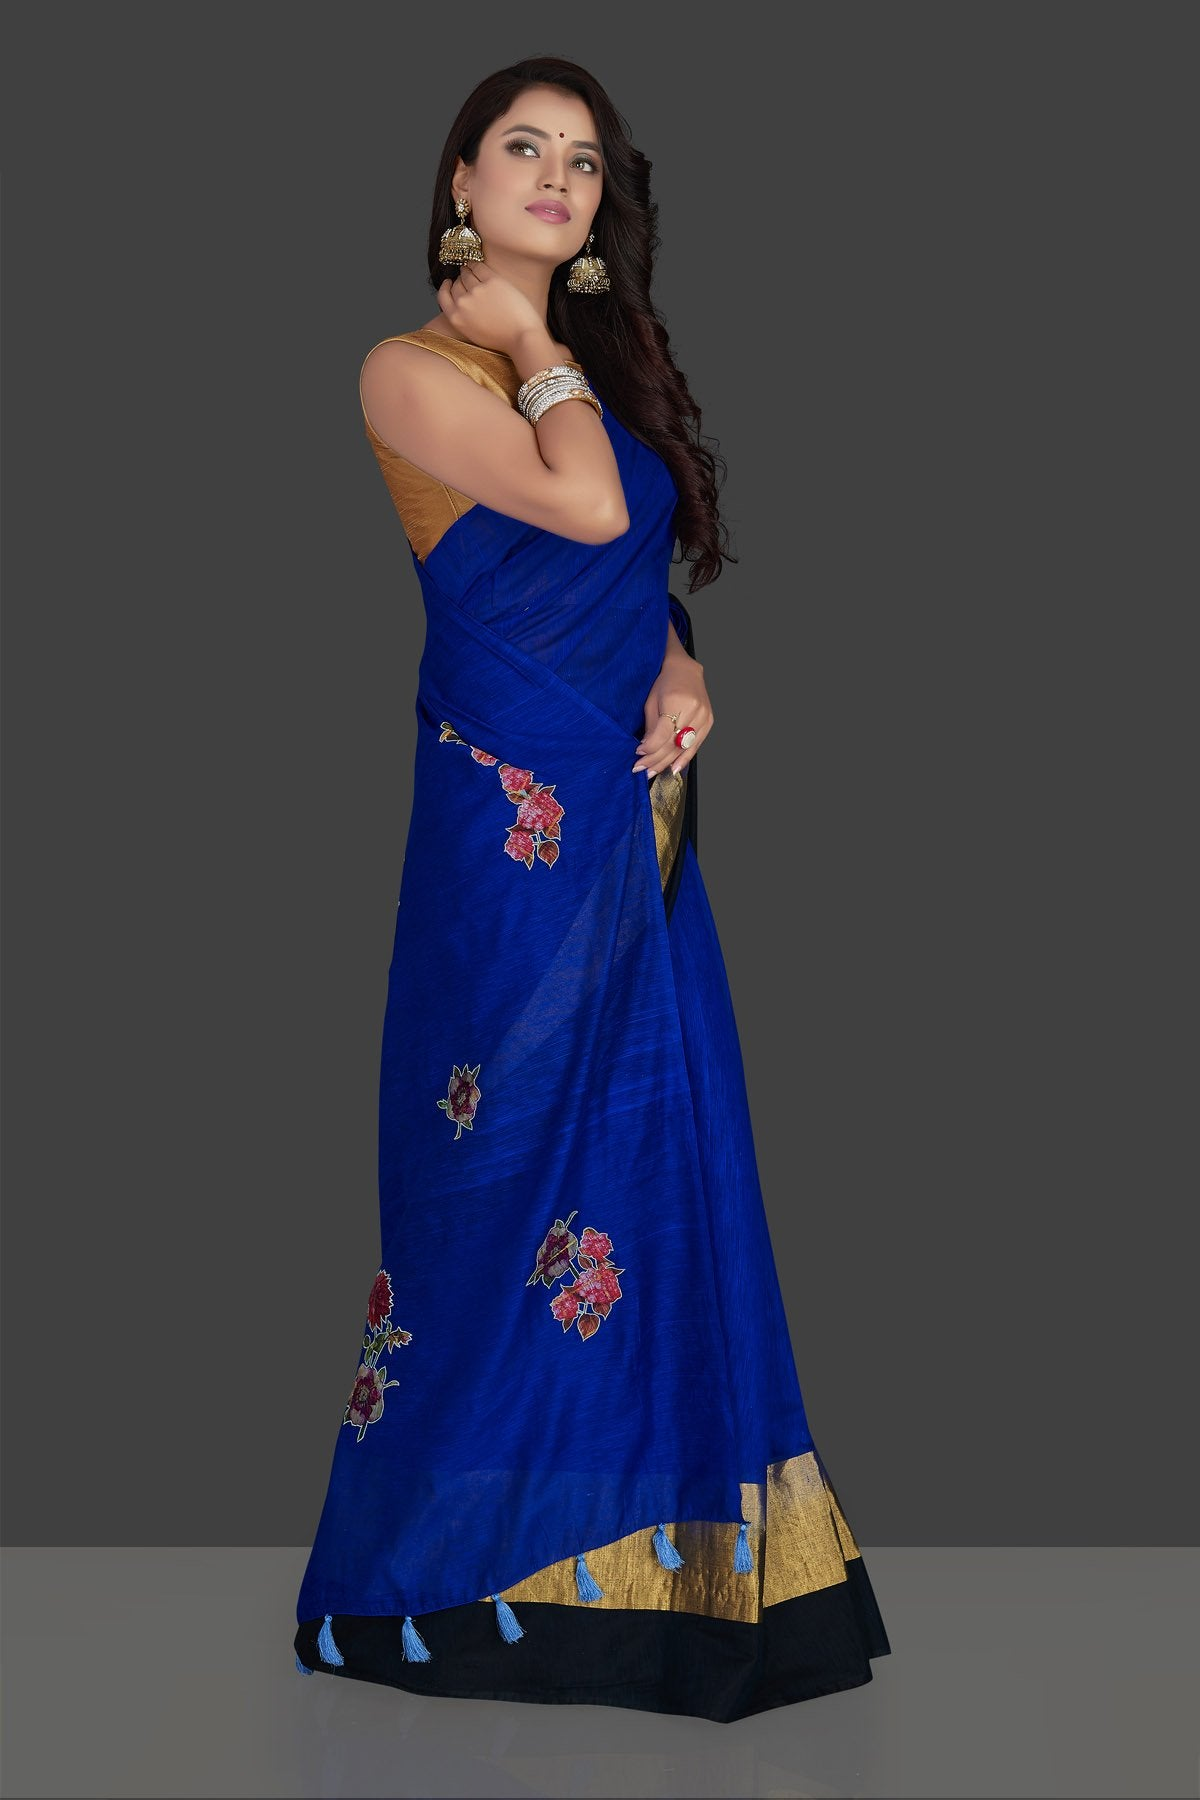 Buy beautiful indigo blue floral applique linen saree online in USA with floral saree blouse. Radiate elegance with designer sarees with blouse, linen sarees from Pure Elegance Indian fashion boutique in USA. We bring a especially curated collection of ethnic saris for Indian women in USA under one roof!-side